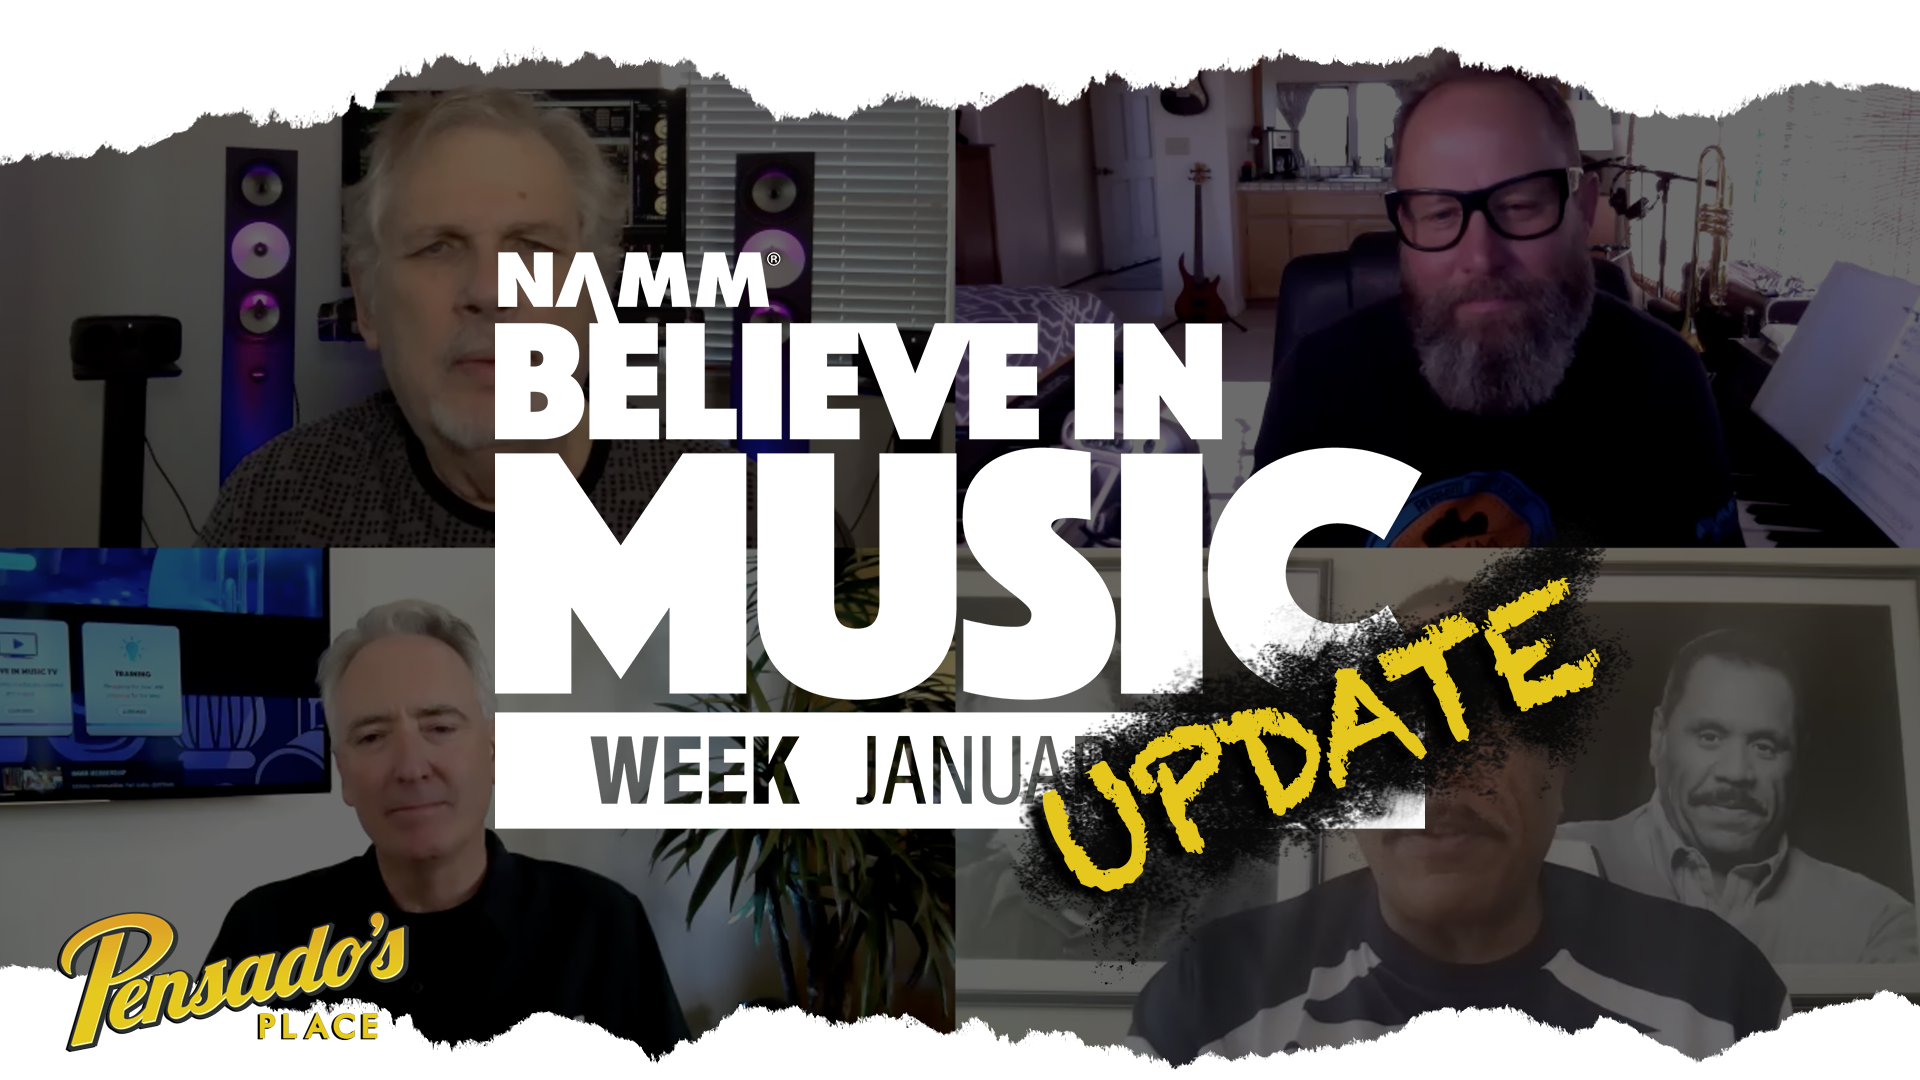 NAMM Believe In Music Update